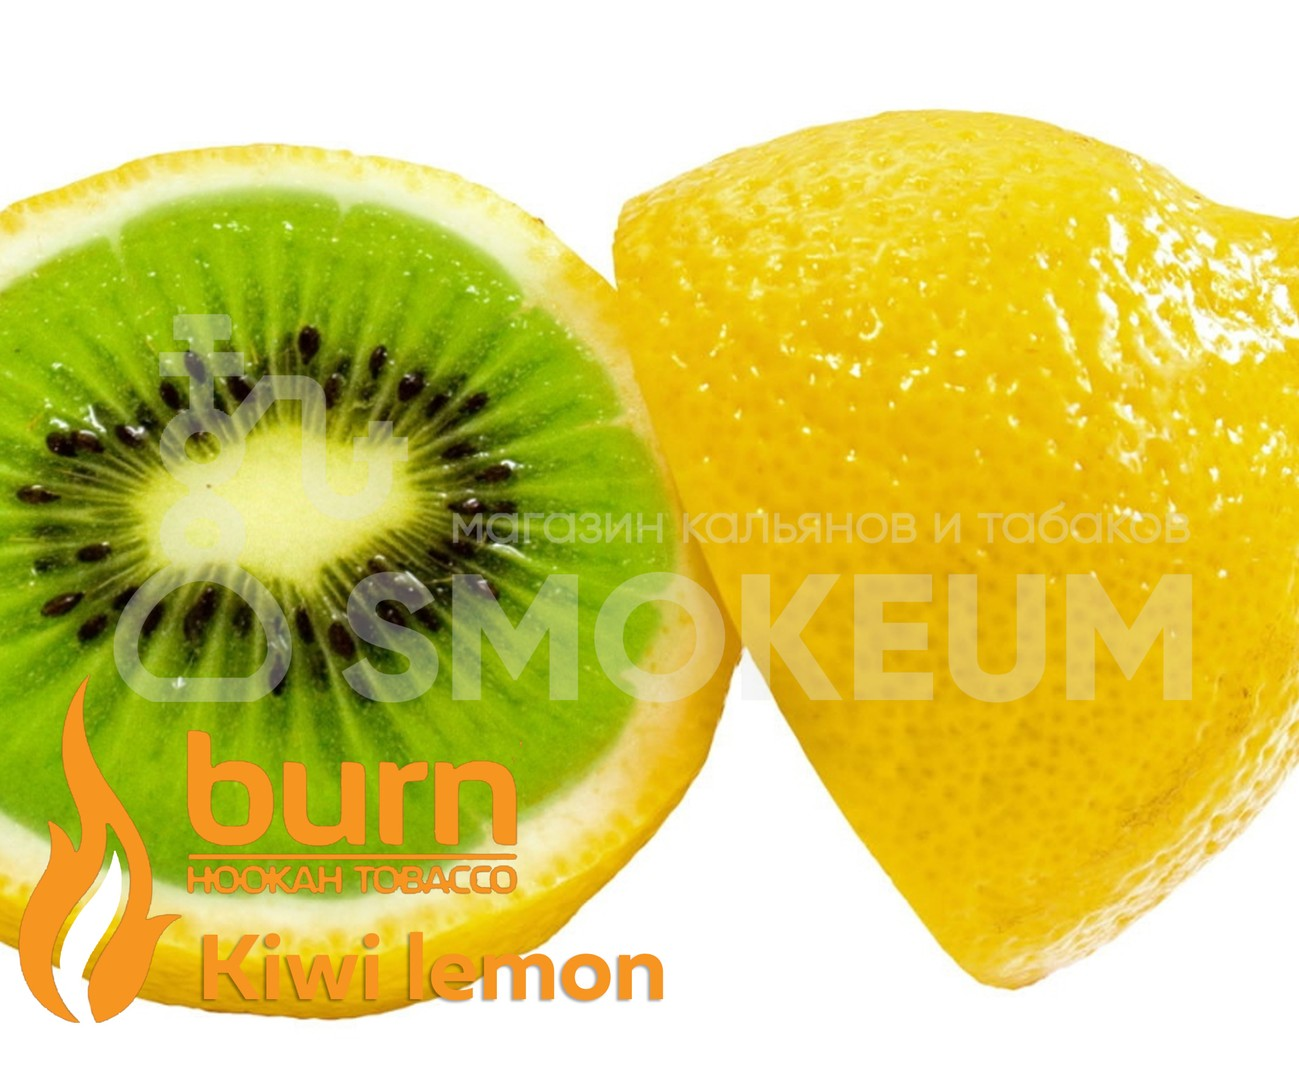 Табак Burn - Kiwi lemon (Киви - Лимон)